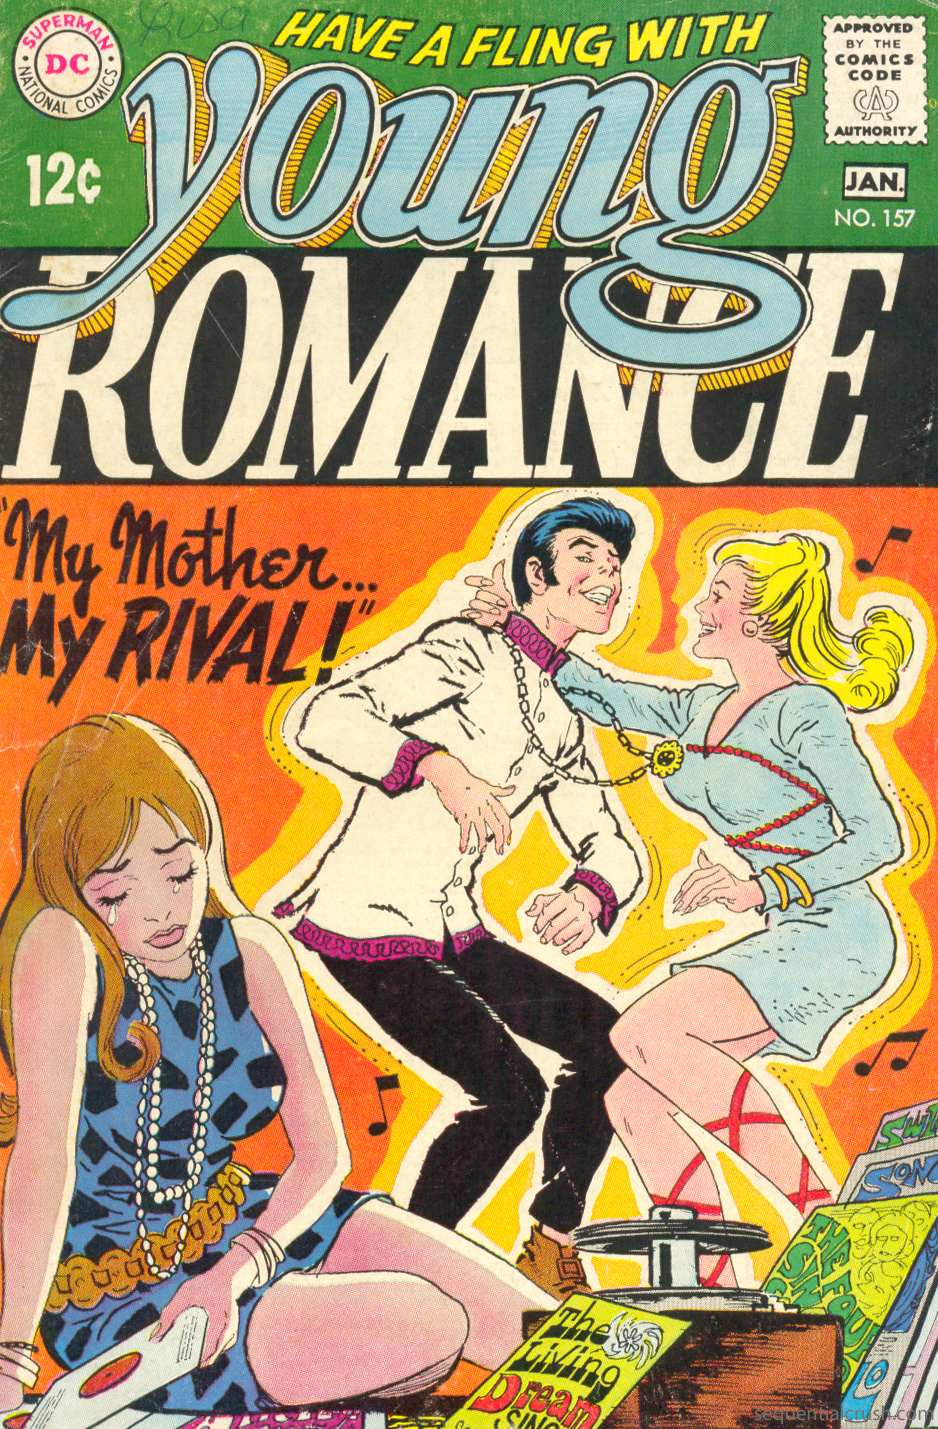 Young Romance #157 (December 1968/January 1969) Pencils and Inks: Nick Cardy